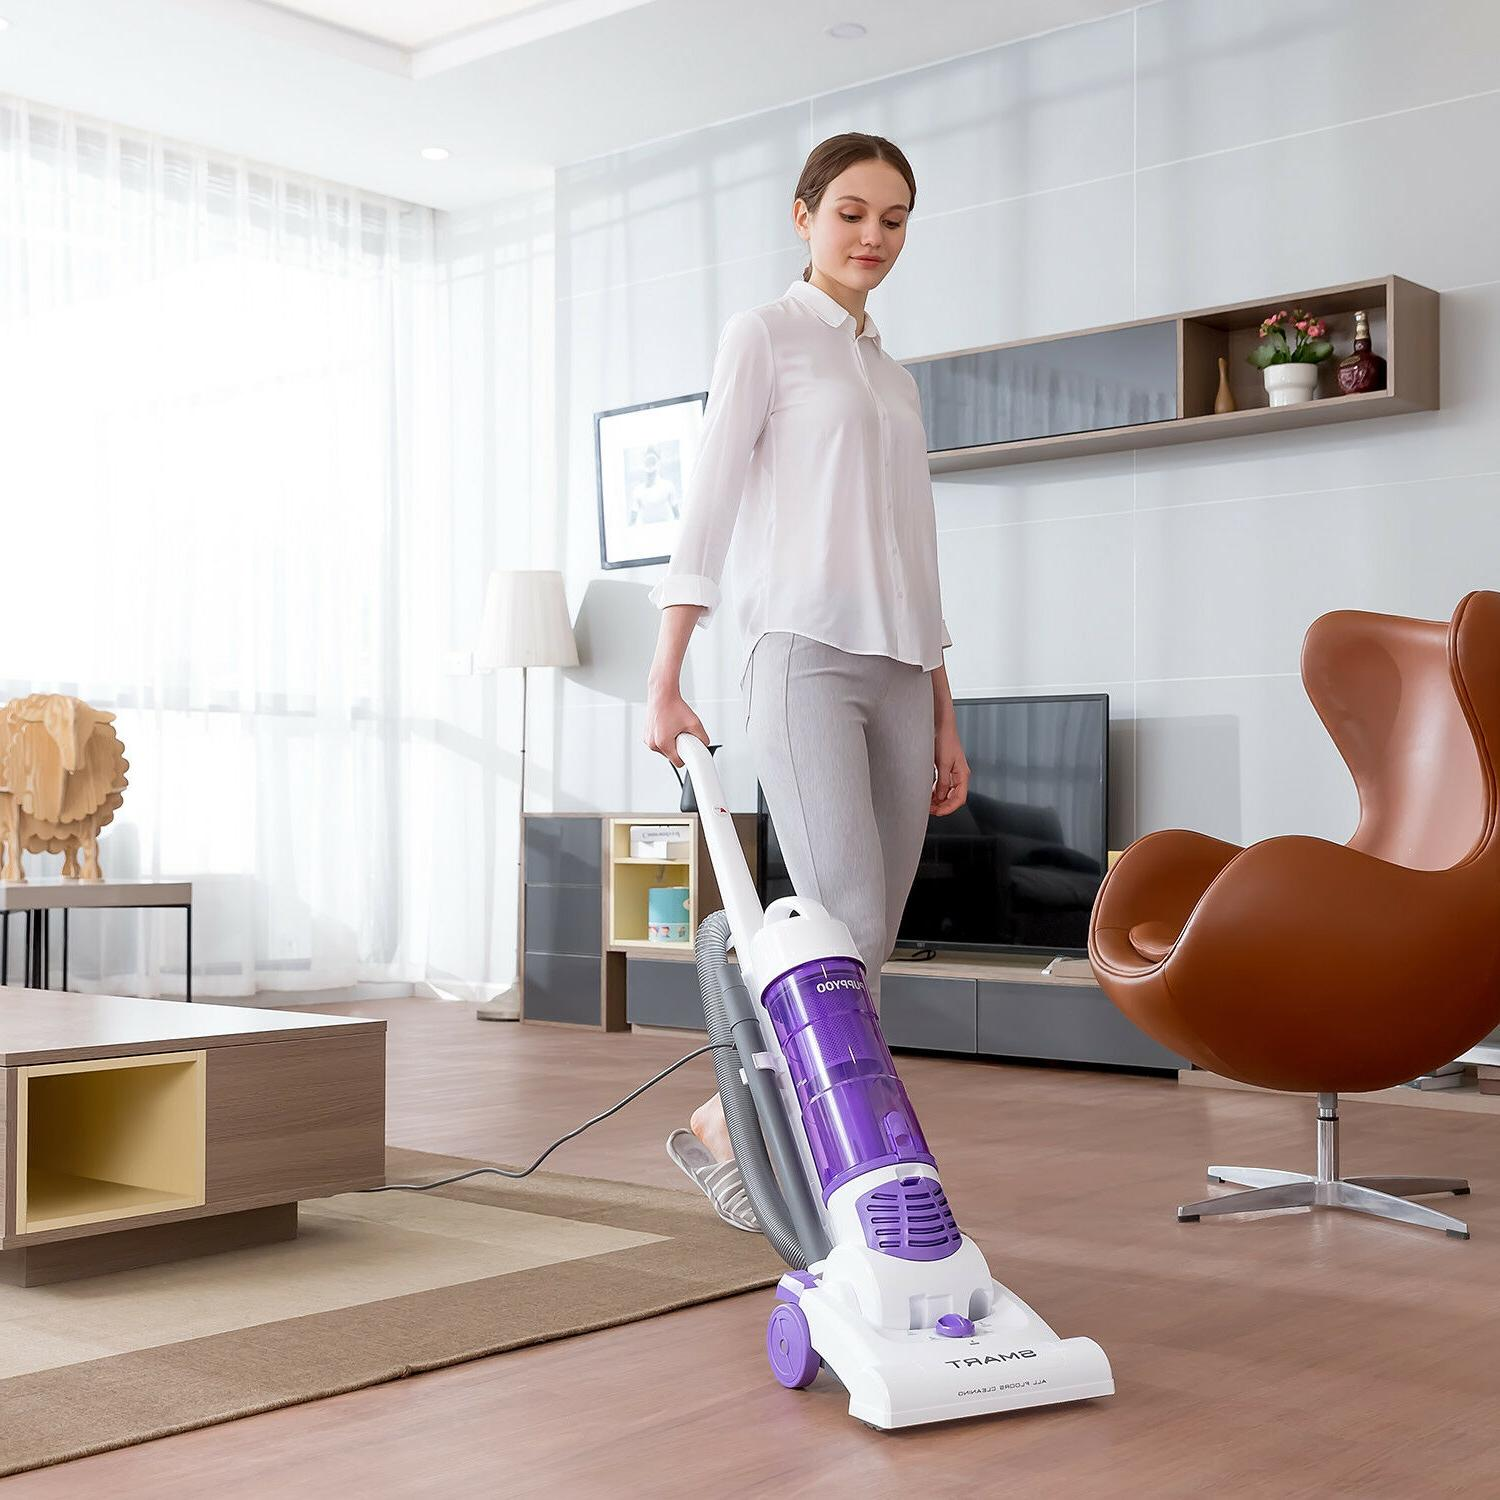 PUPPYOO S6 Upright Cleaner Bagless Lightweight Portable